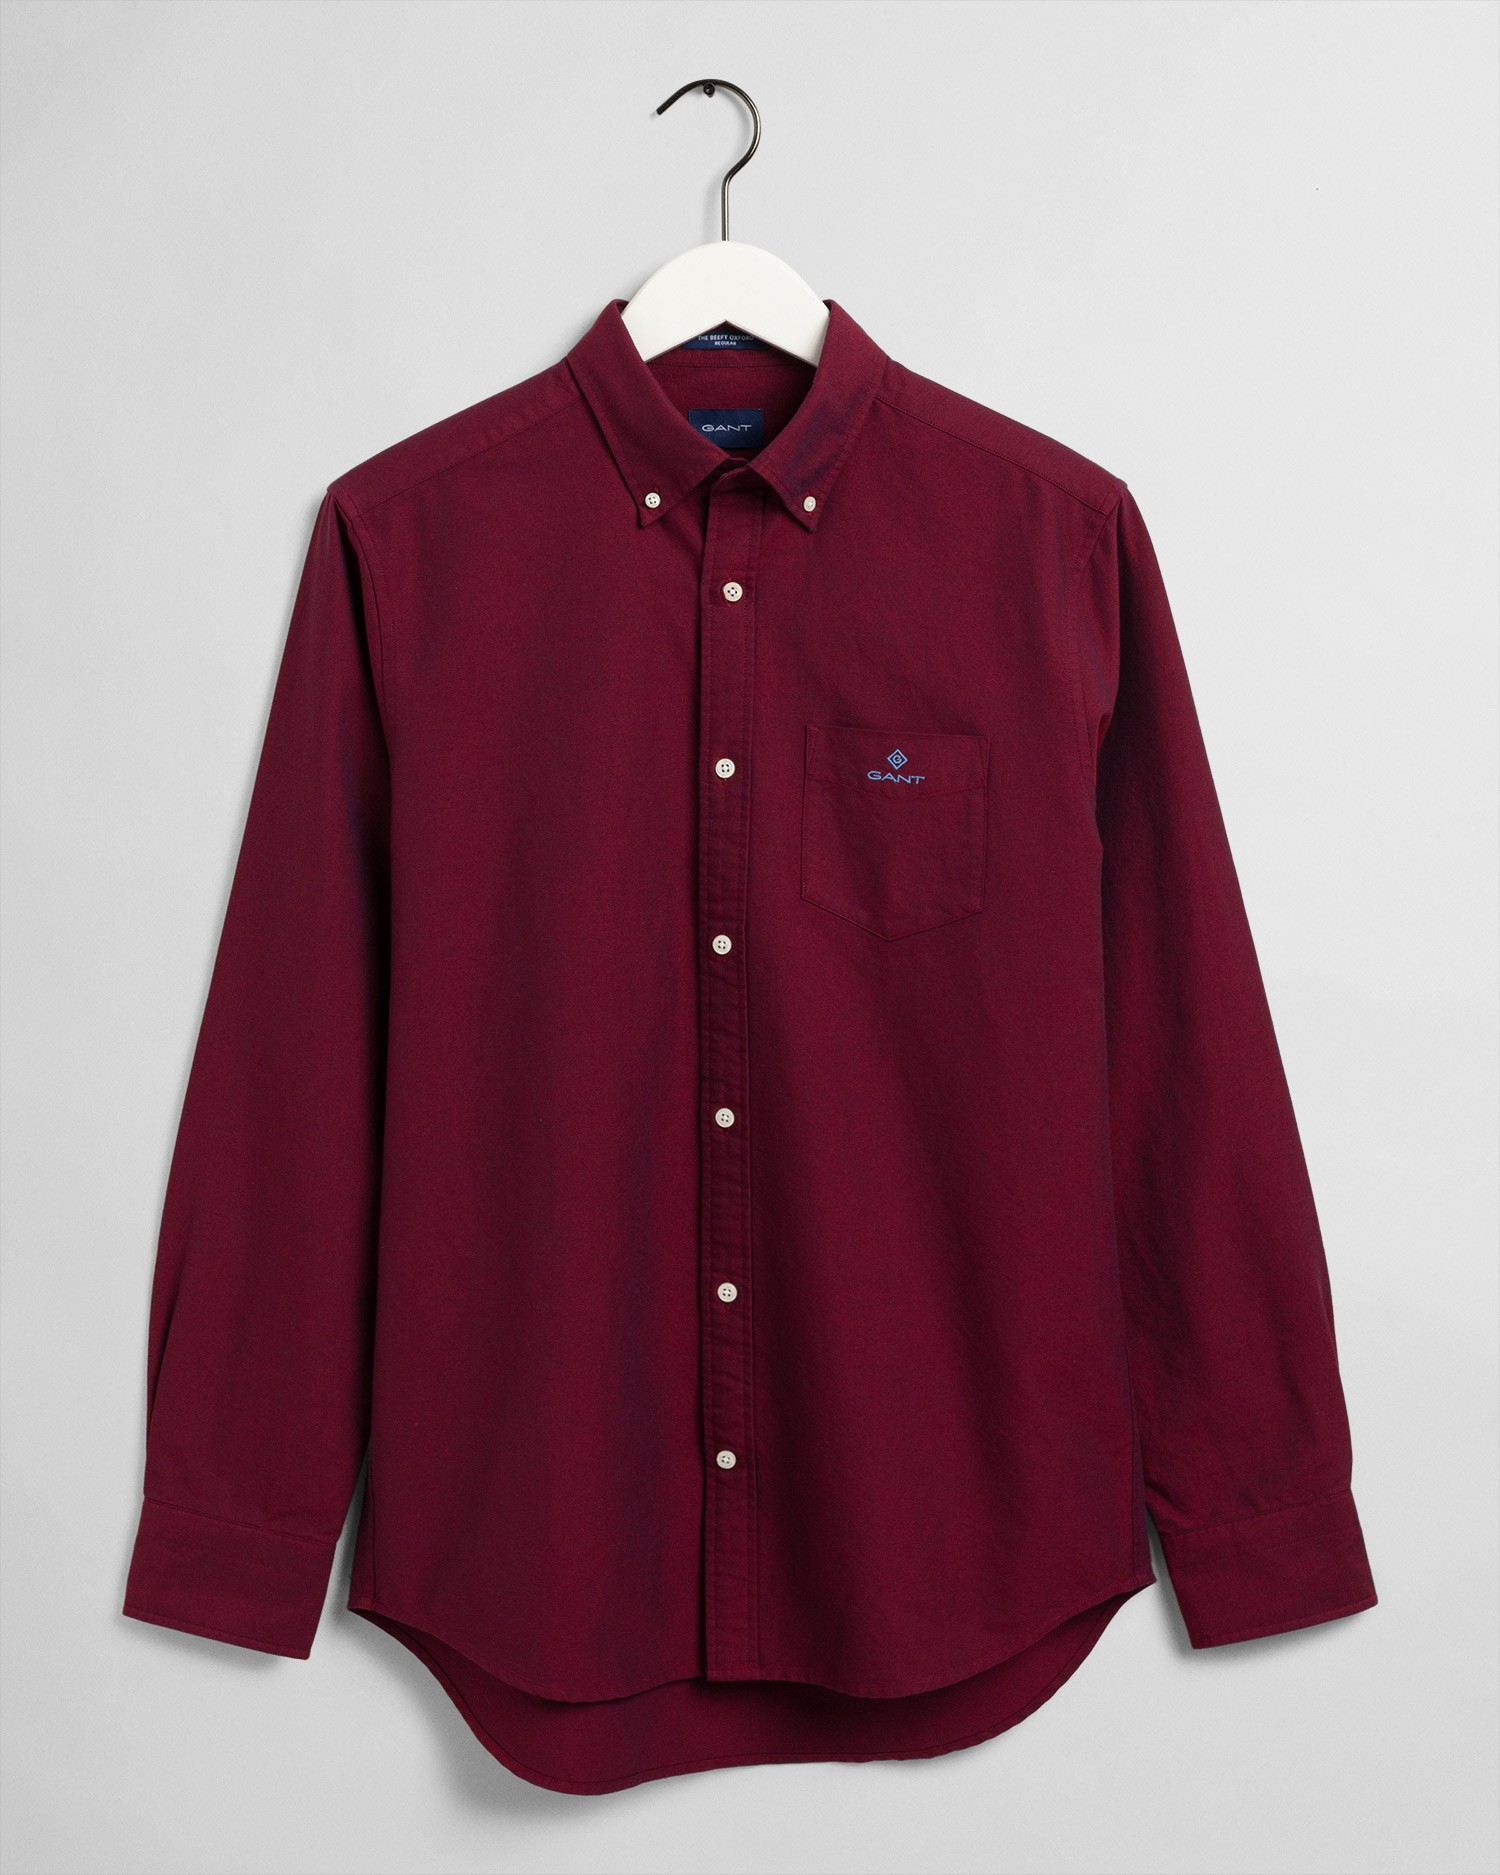 GANT Men's The Beefy Oxford Shirt Regular Fit Broadcloth Shirts - 3007470